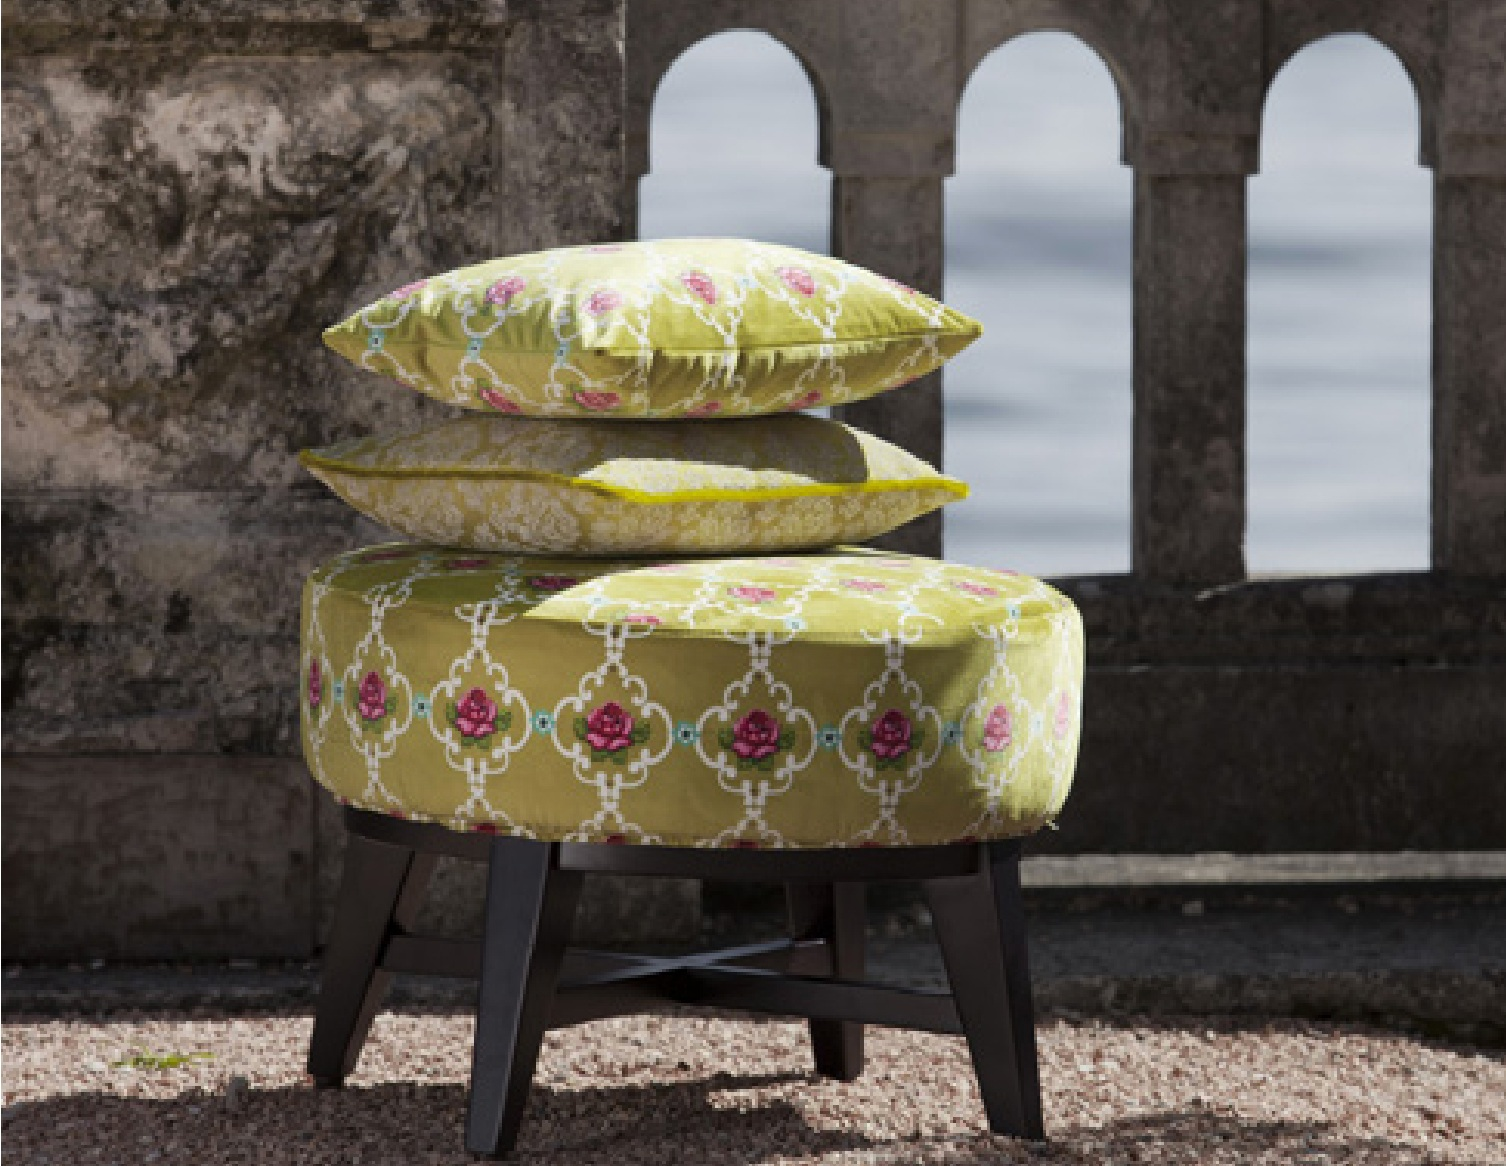 06. MAMMA MIA, a collection of curtain fabrics and decorative accessories